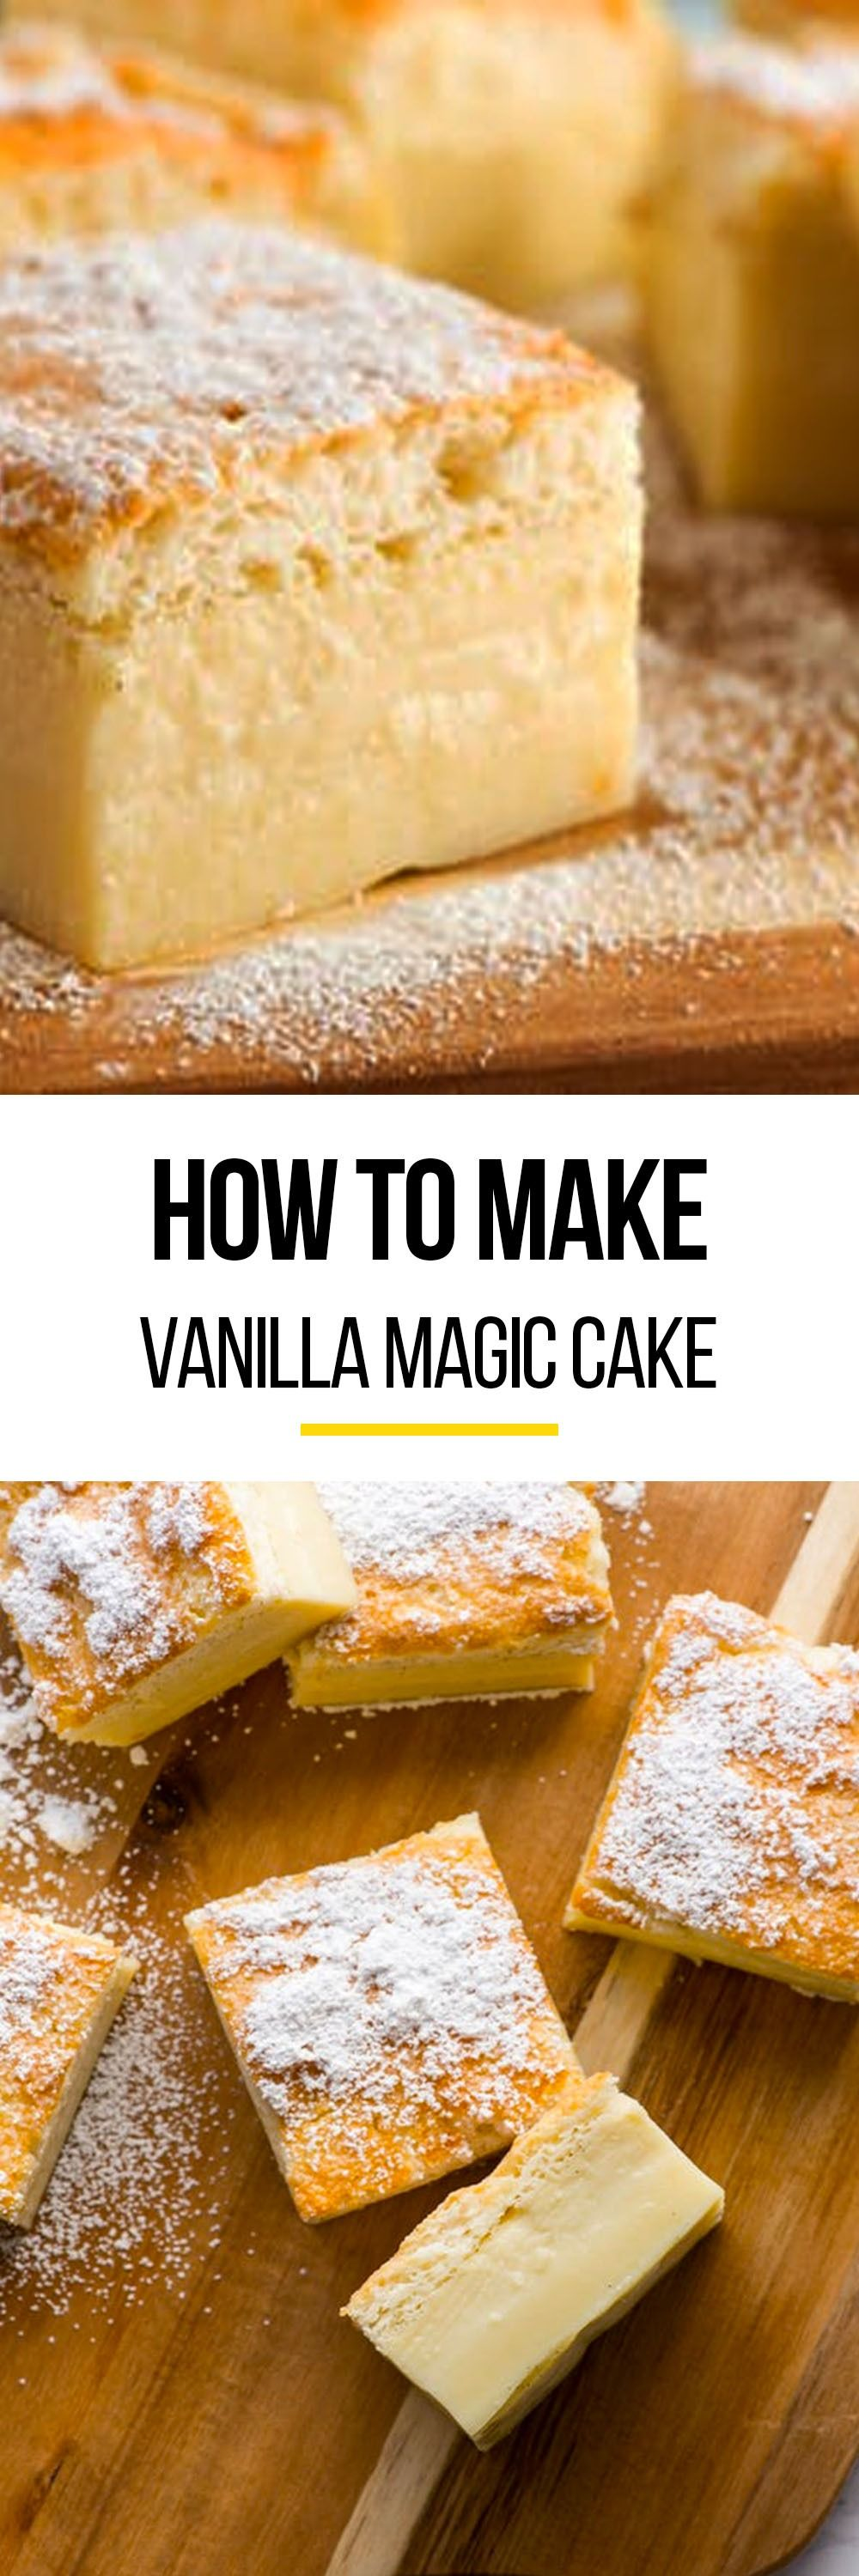 How To Make Vanilla Magic Cake | Recipe | Desserts for a ...